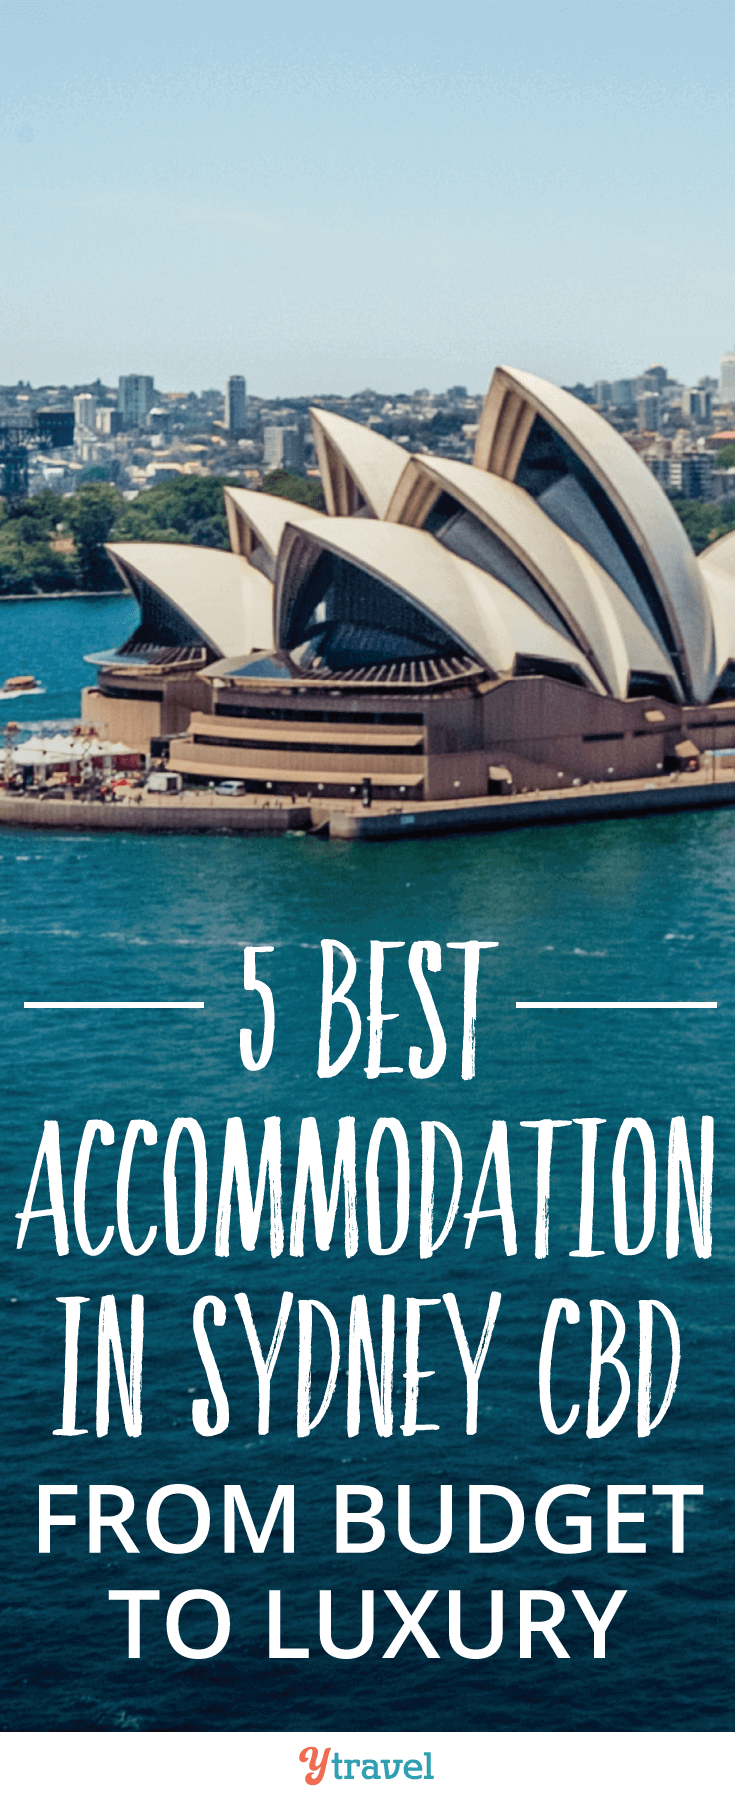 Looking for a place to stay on your visit to Sydney? We have researched the best accommodation in the Sydney CBD to save you time! Let us know what you choose.